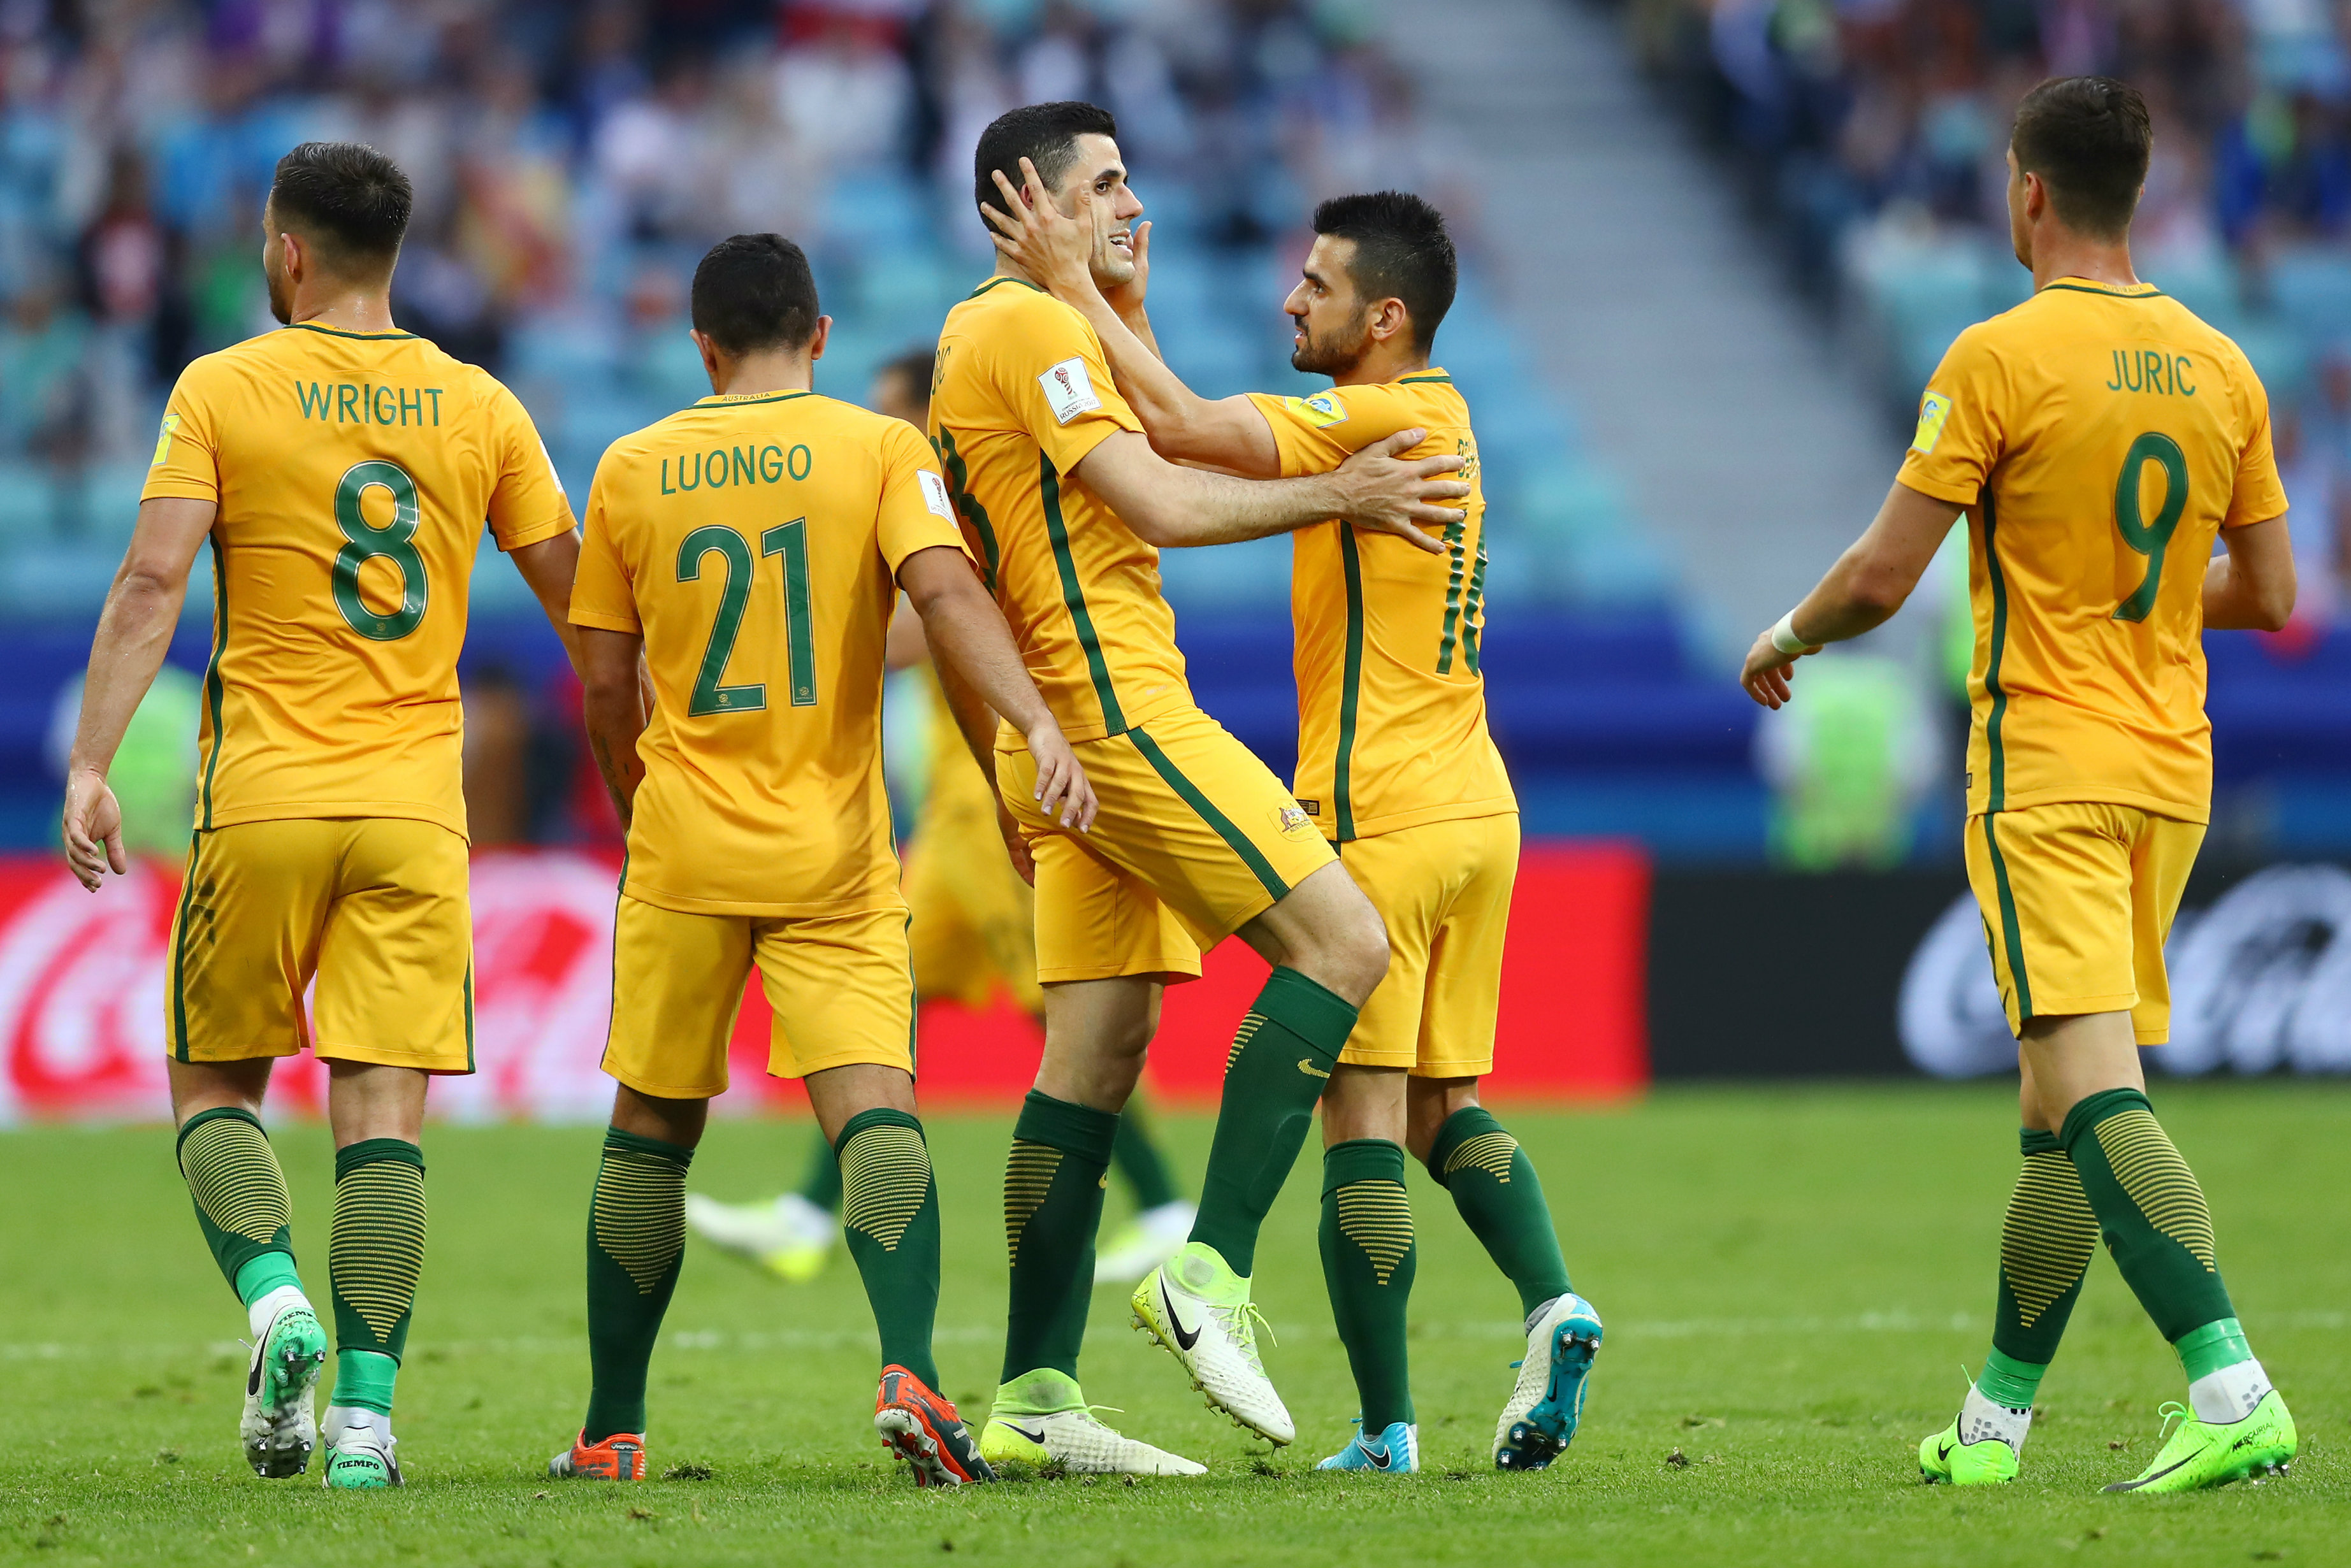 The Caltex Socceroos celebrate scoring a goal during the FIFA Confederations Cup.